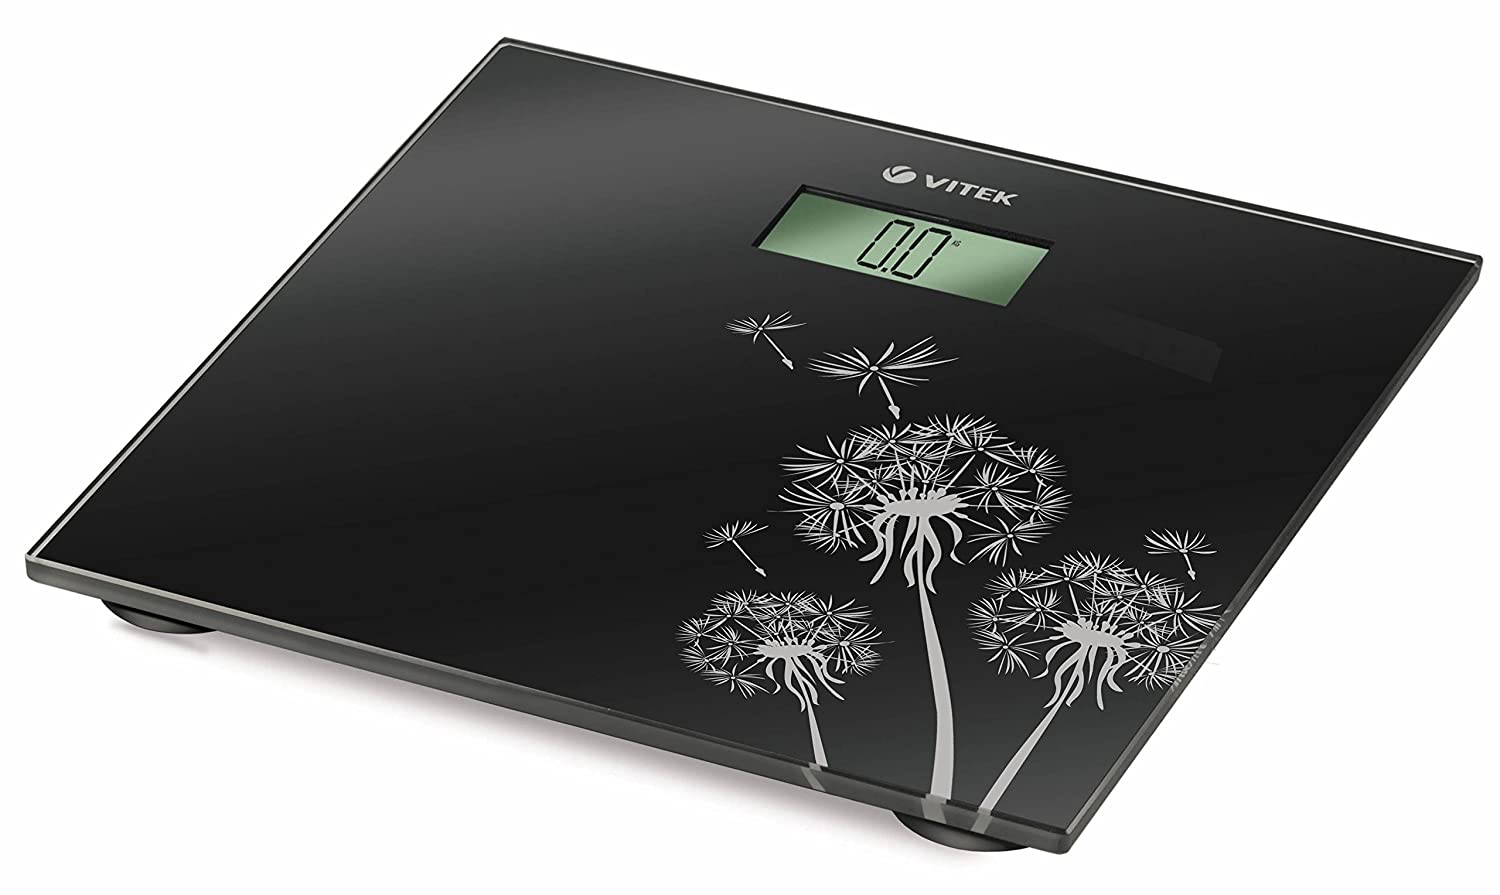 Vitek kitchen scales: product overview and customer reviews